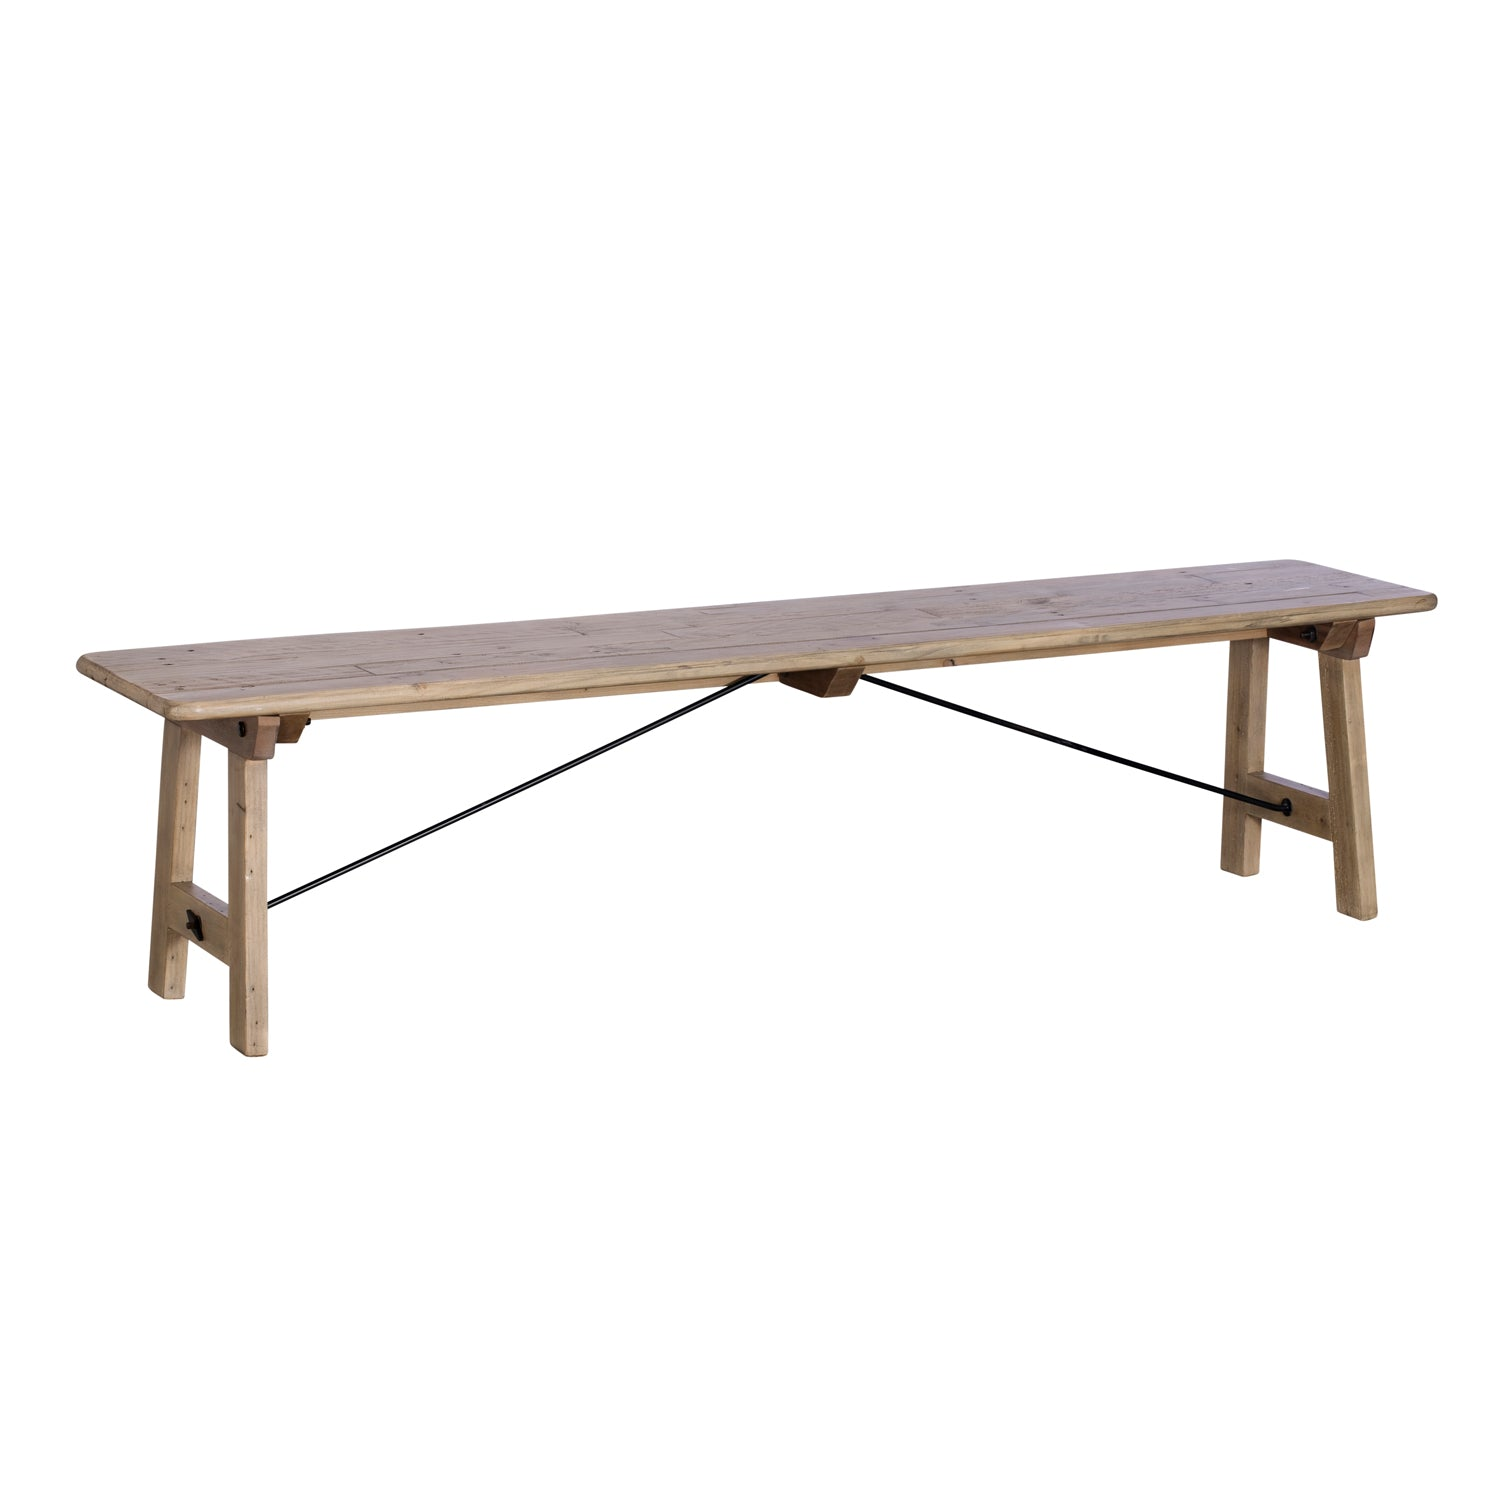 Sands End Reclaimed Timber Dining Bench